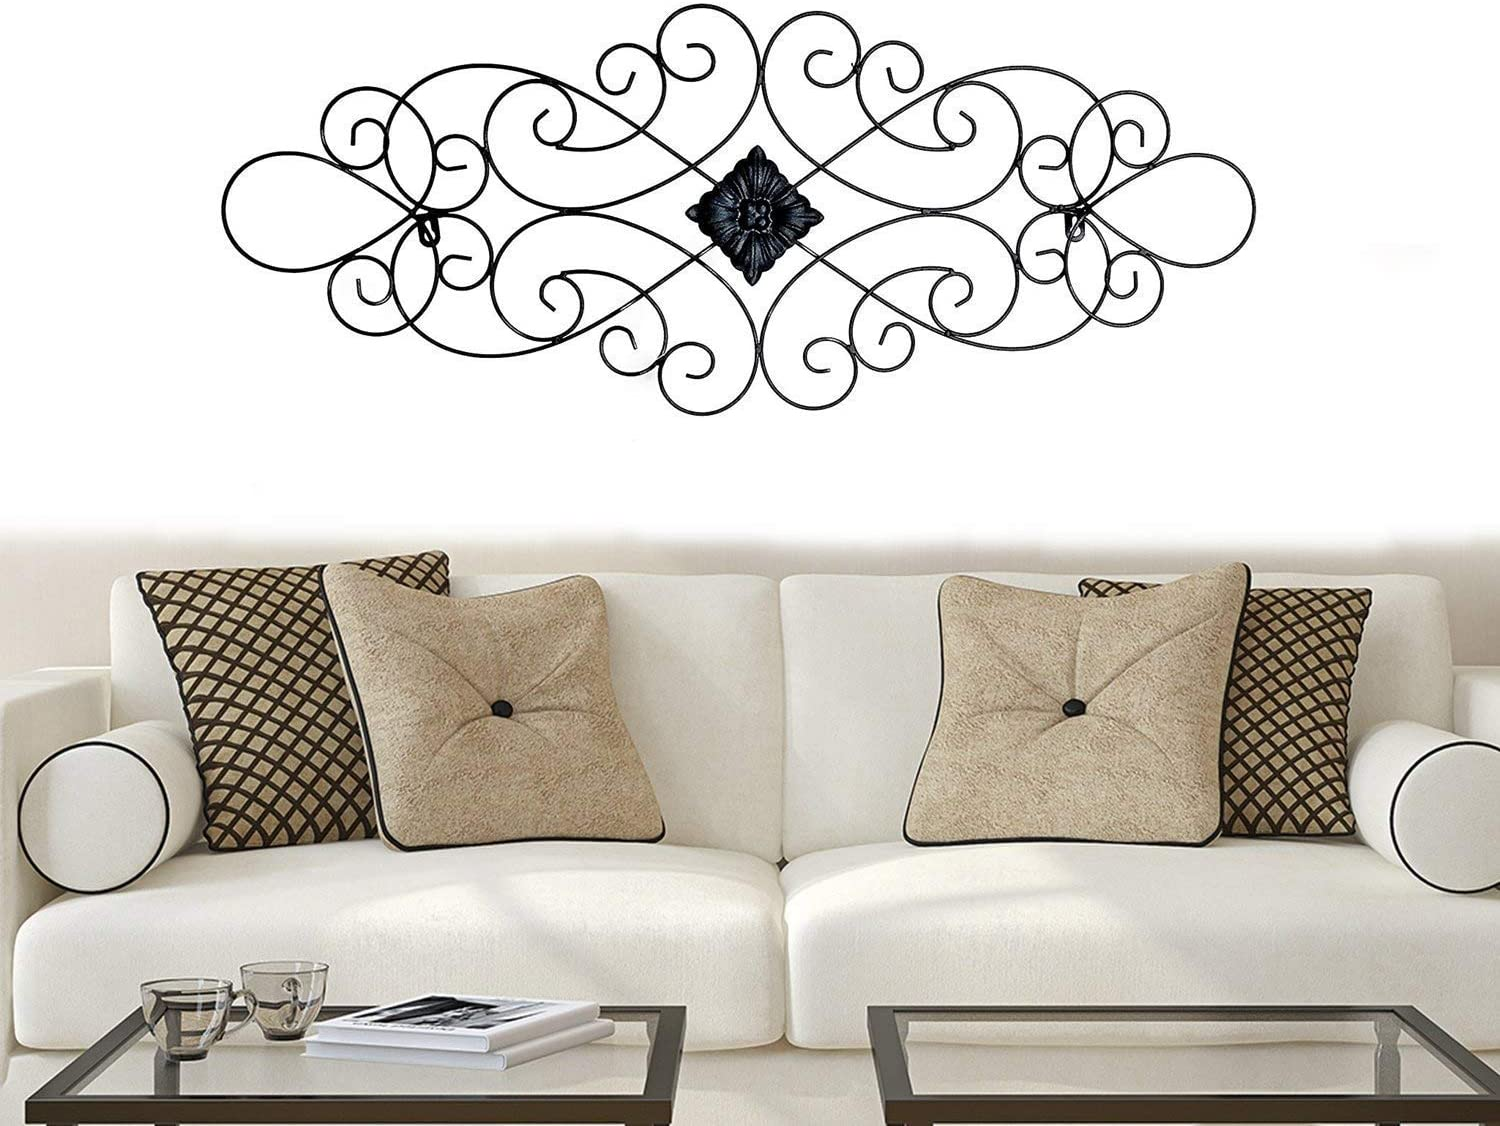 Bellaa 23226 Scrolled Metal Wall Art Medallion Plaque Oblong Living Room Home Decoration Wall Sculptures